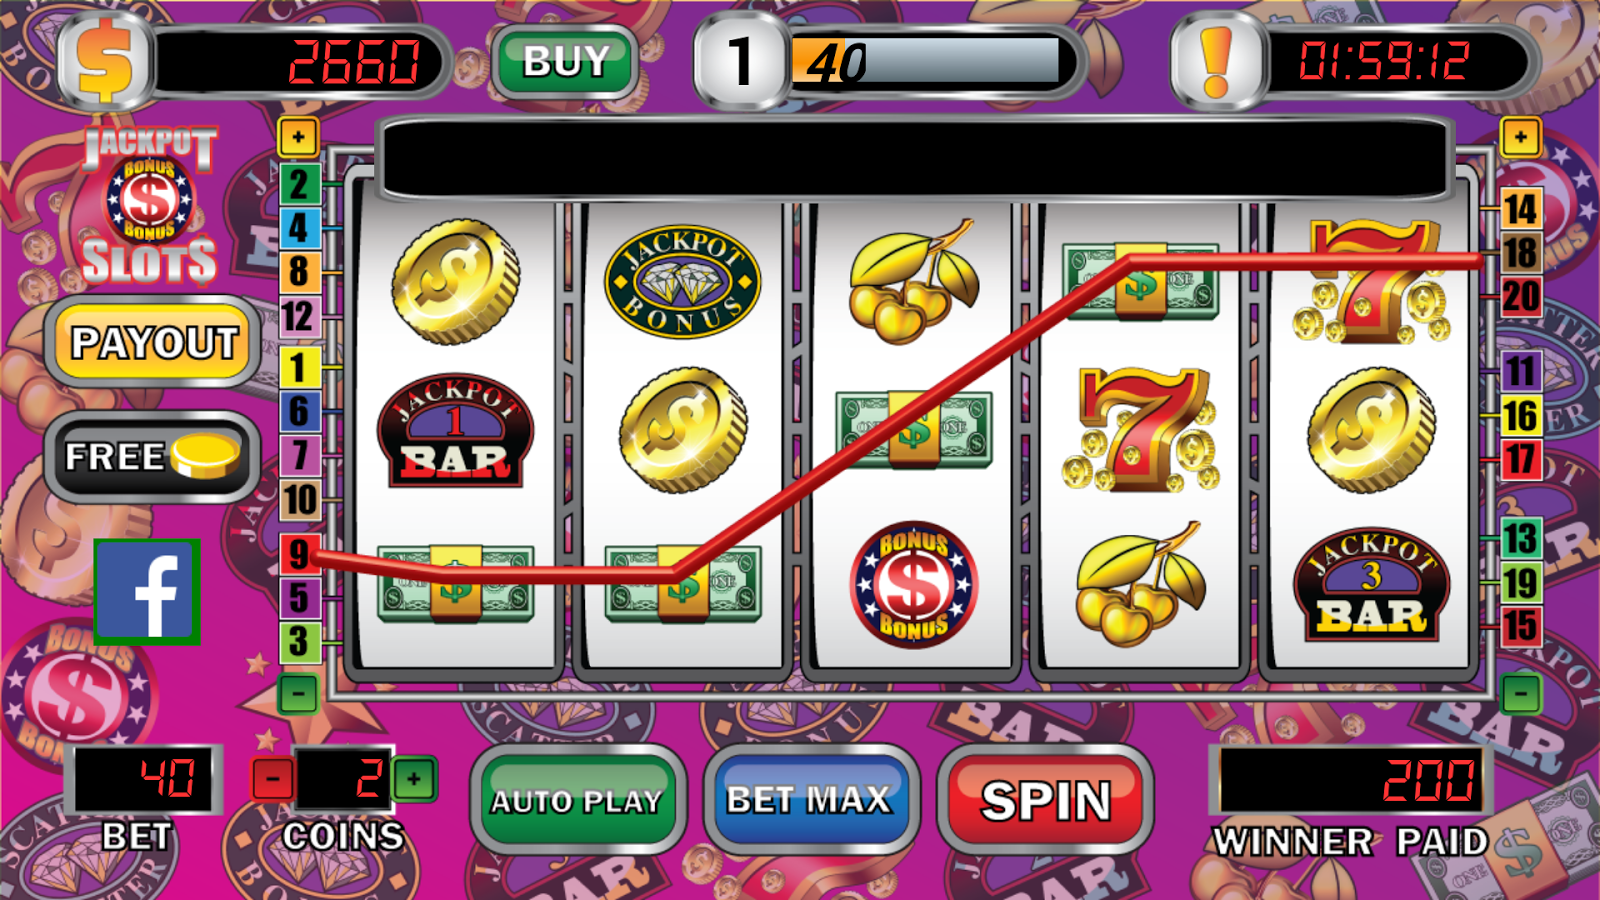 3 reel slot machine jackpots over 12000